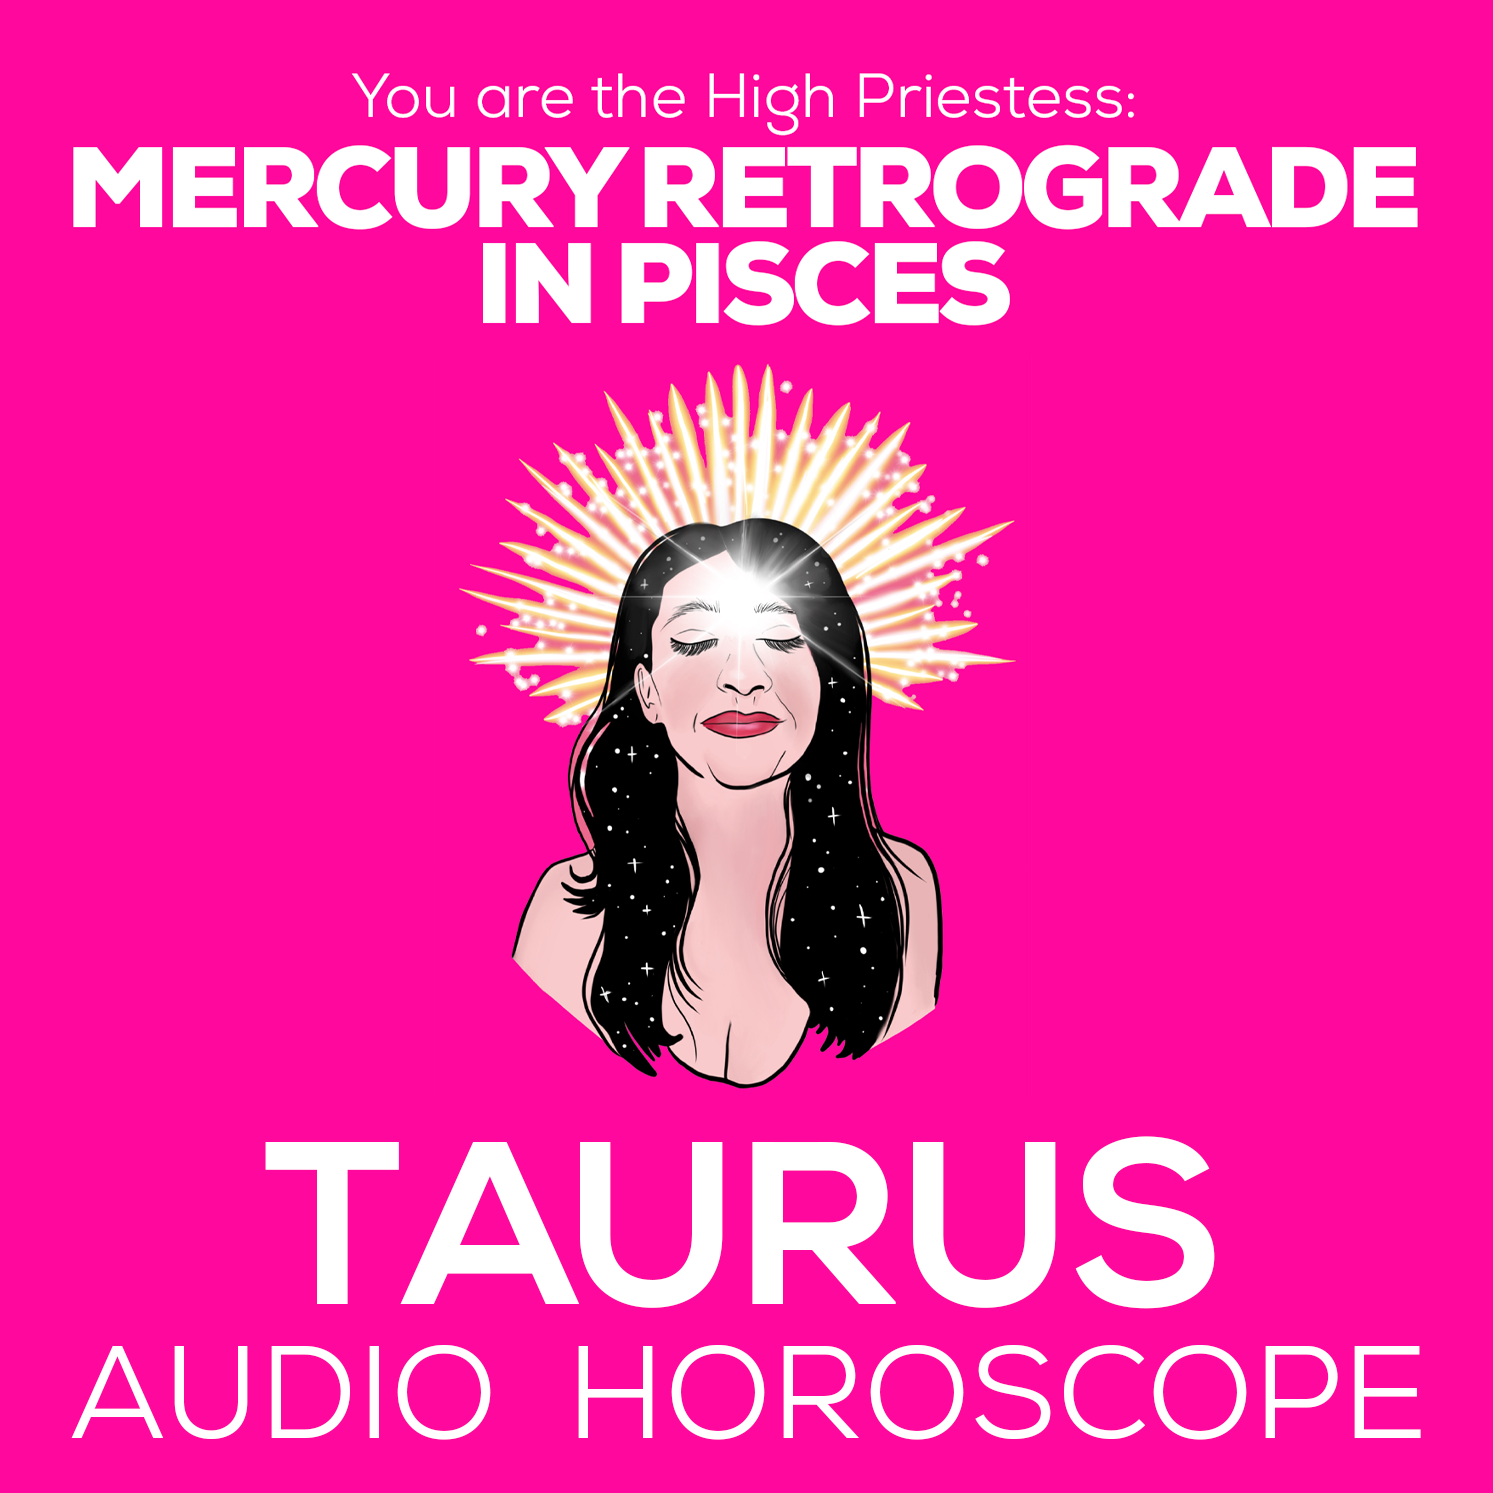 Audio Horoscope - Taurus